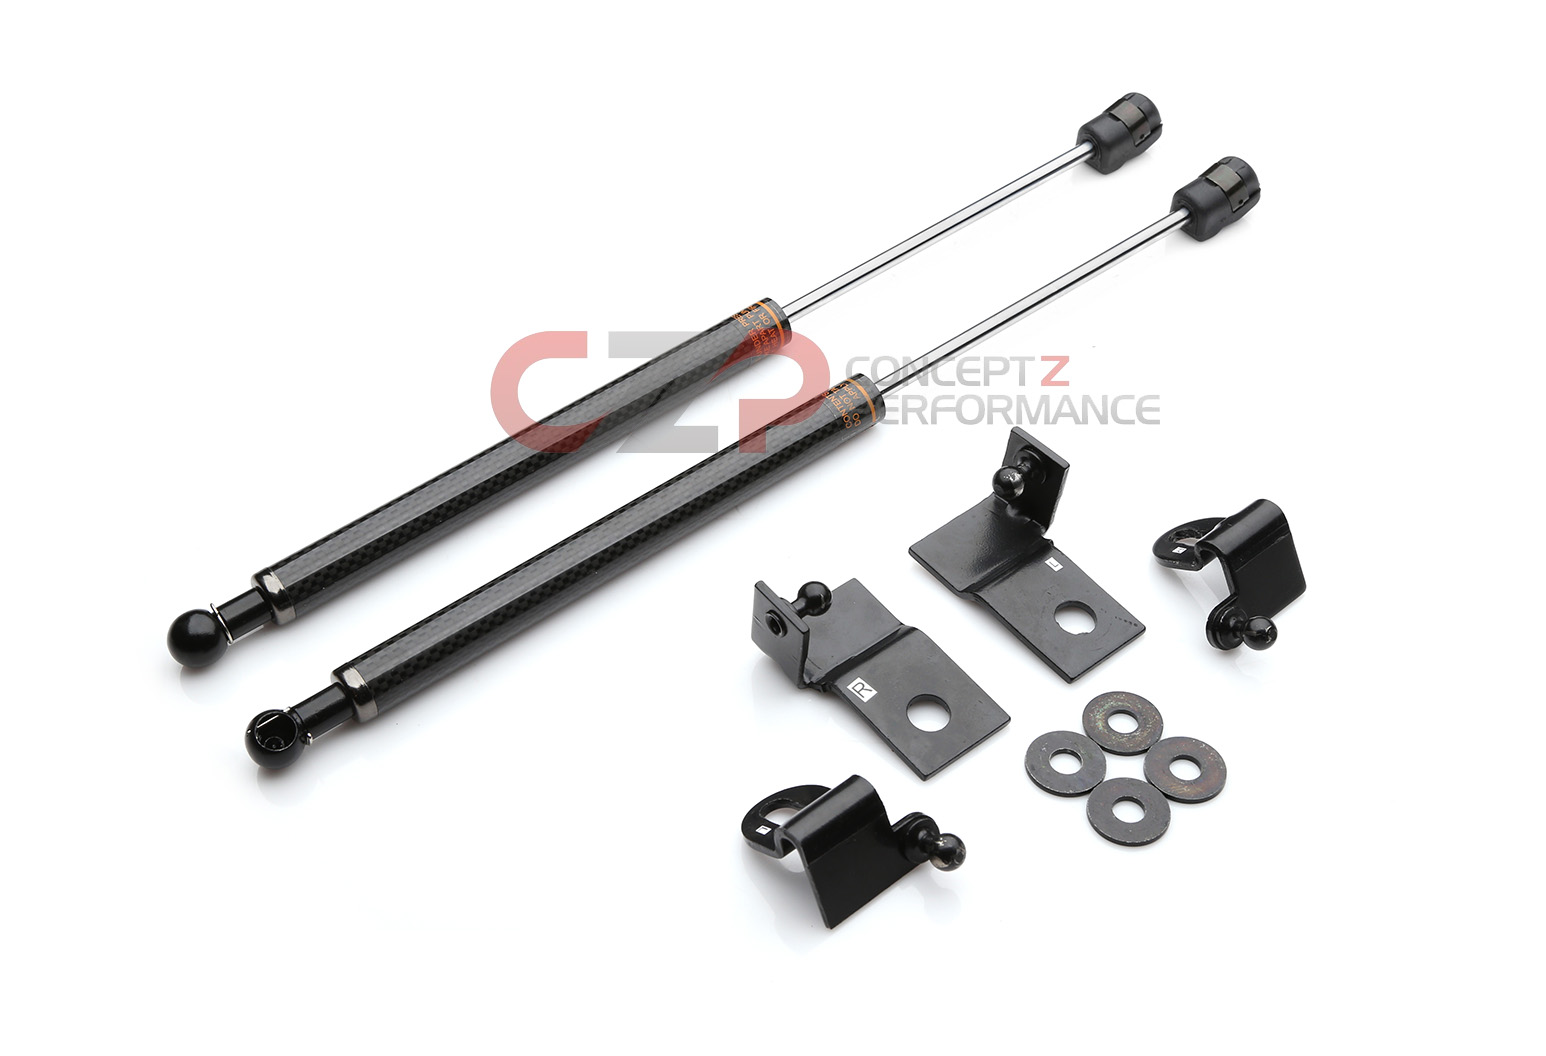 Coupe Circuit Sports Carbon Fiber CF Hood Dampers Kit for Infiniti G35